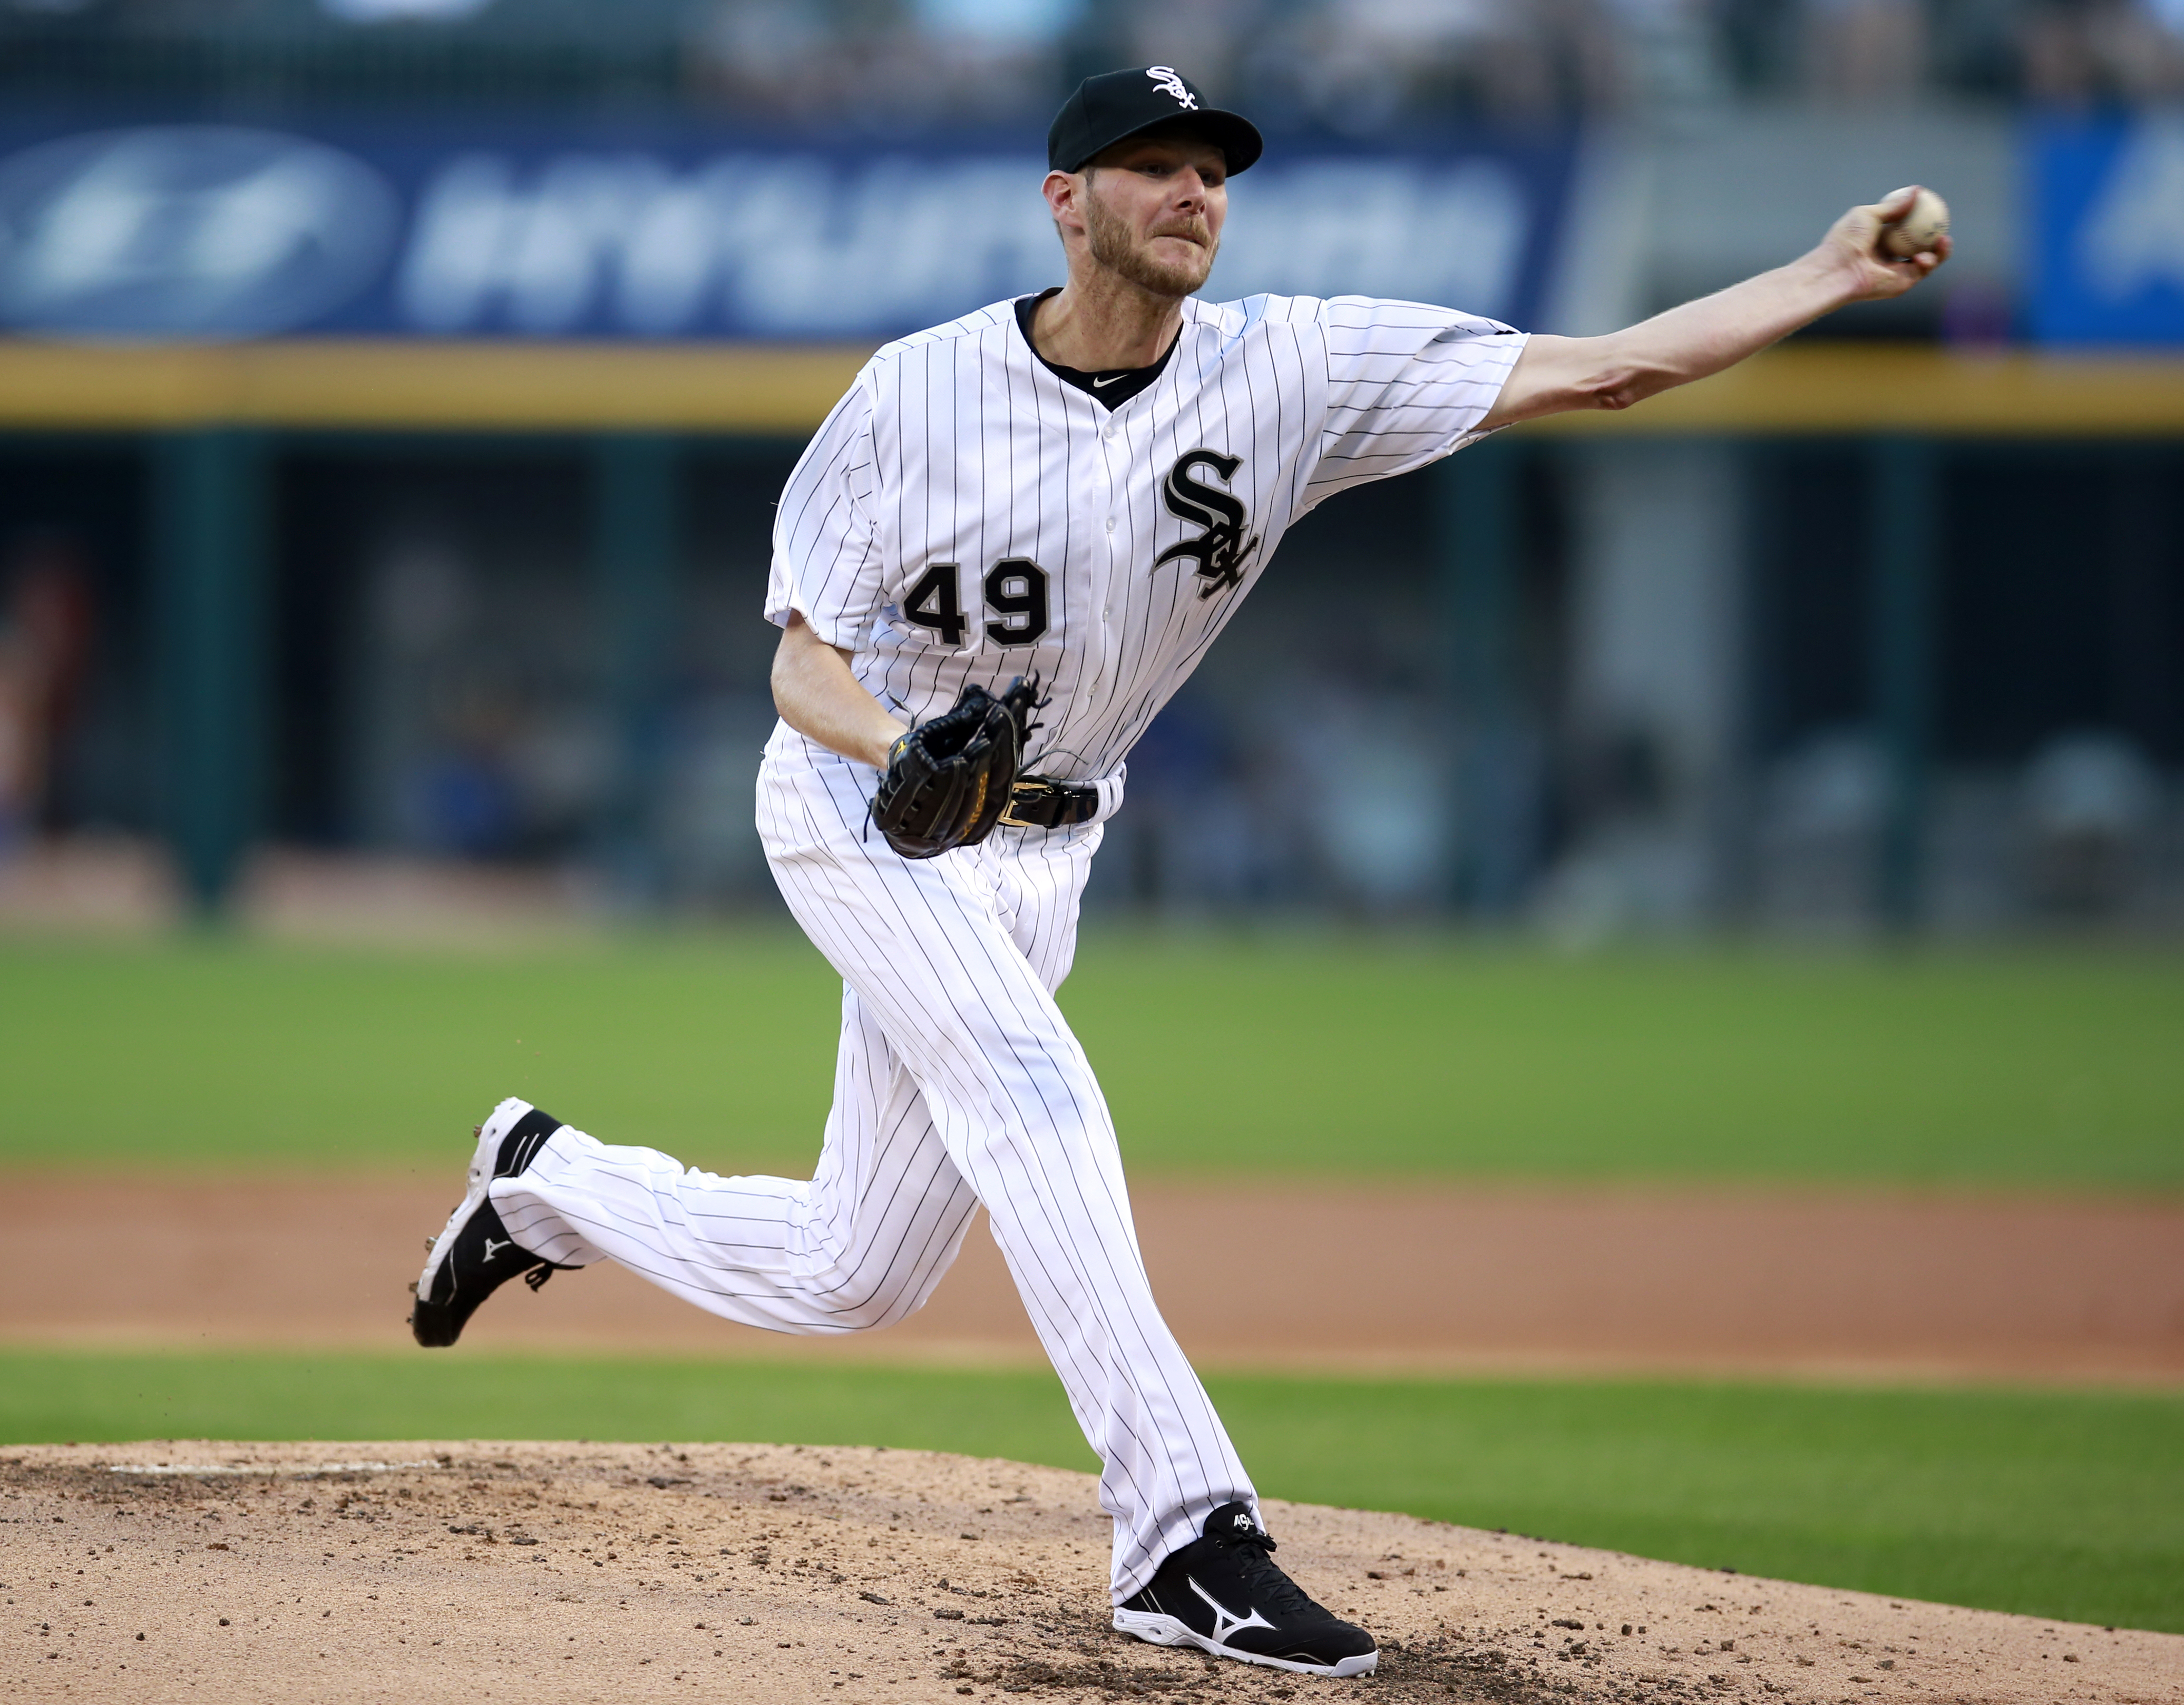 Chicago White Sox starting pitcher Chris Sale (49) delivers during the second inning of a baseball game against the Kansas City Royals in Chicago, Friday, June 10, 2016. (AP Photo/Jeff Haynes)